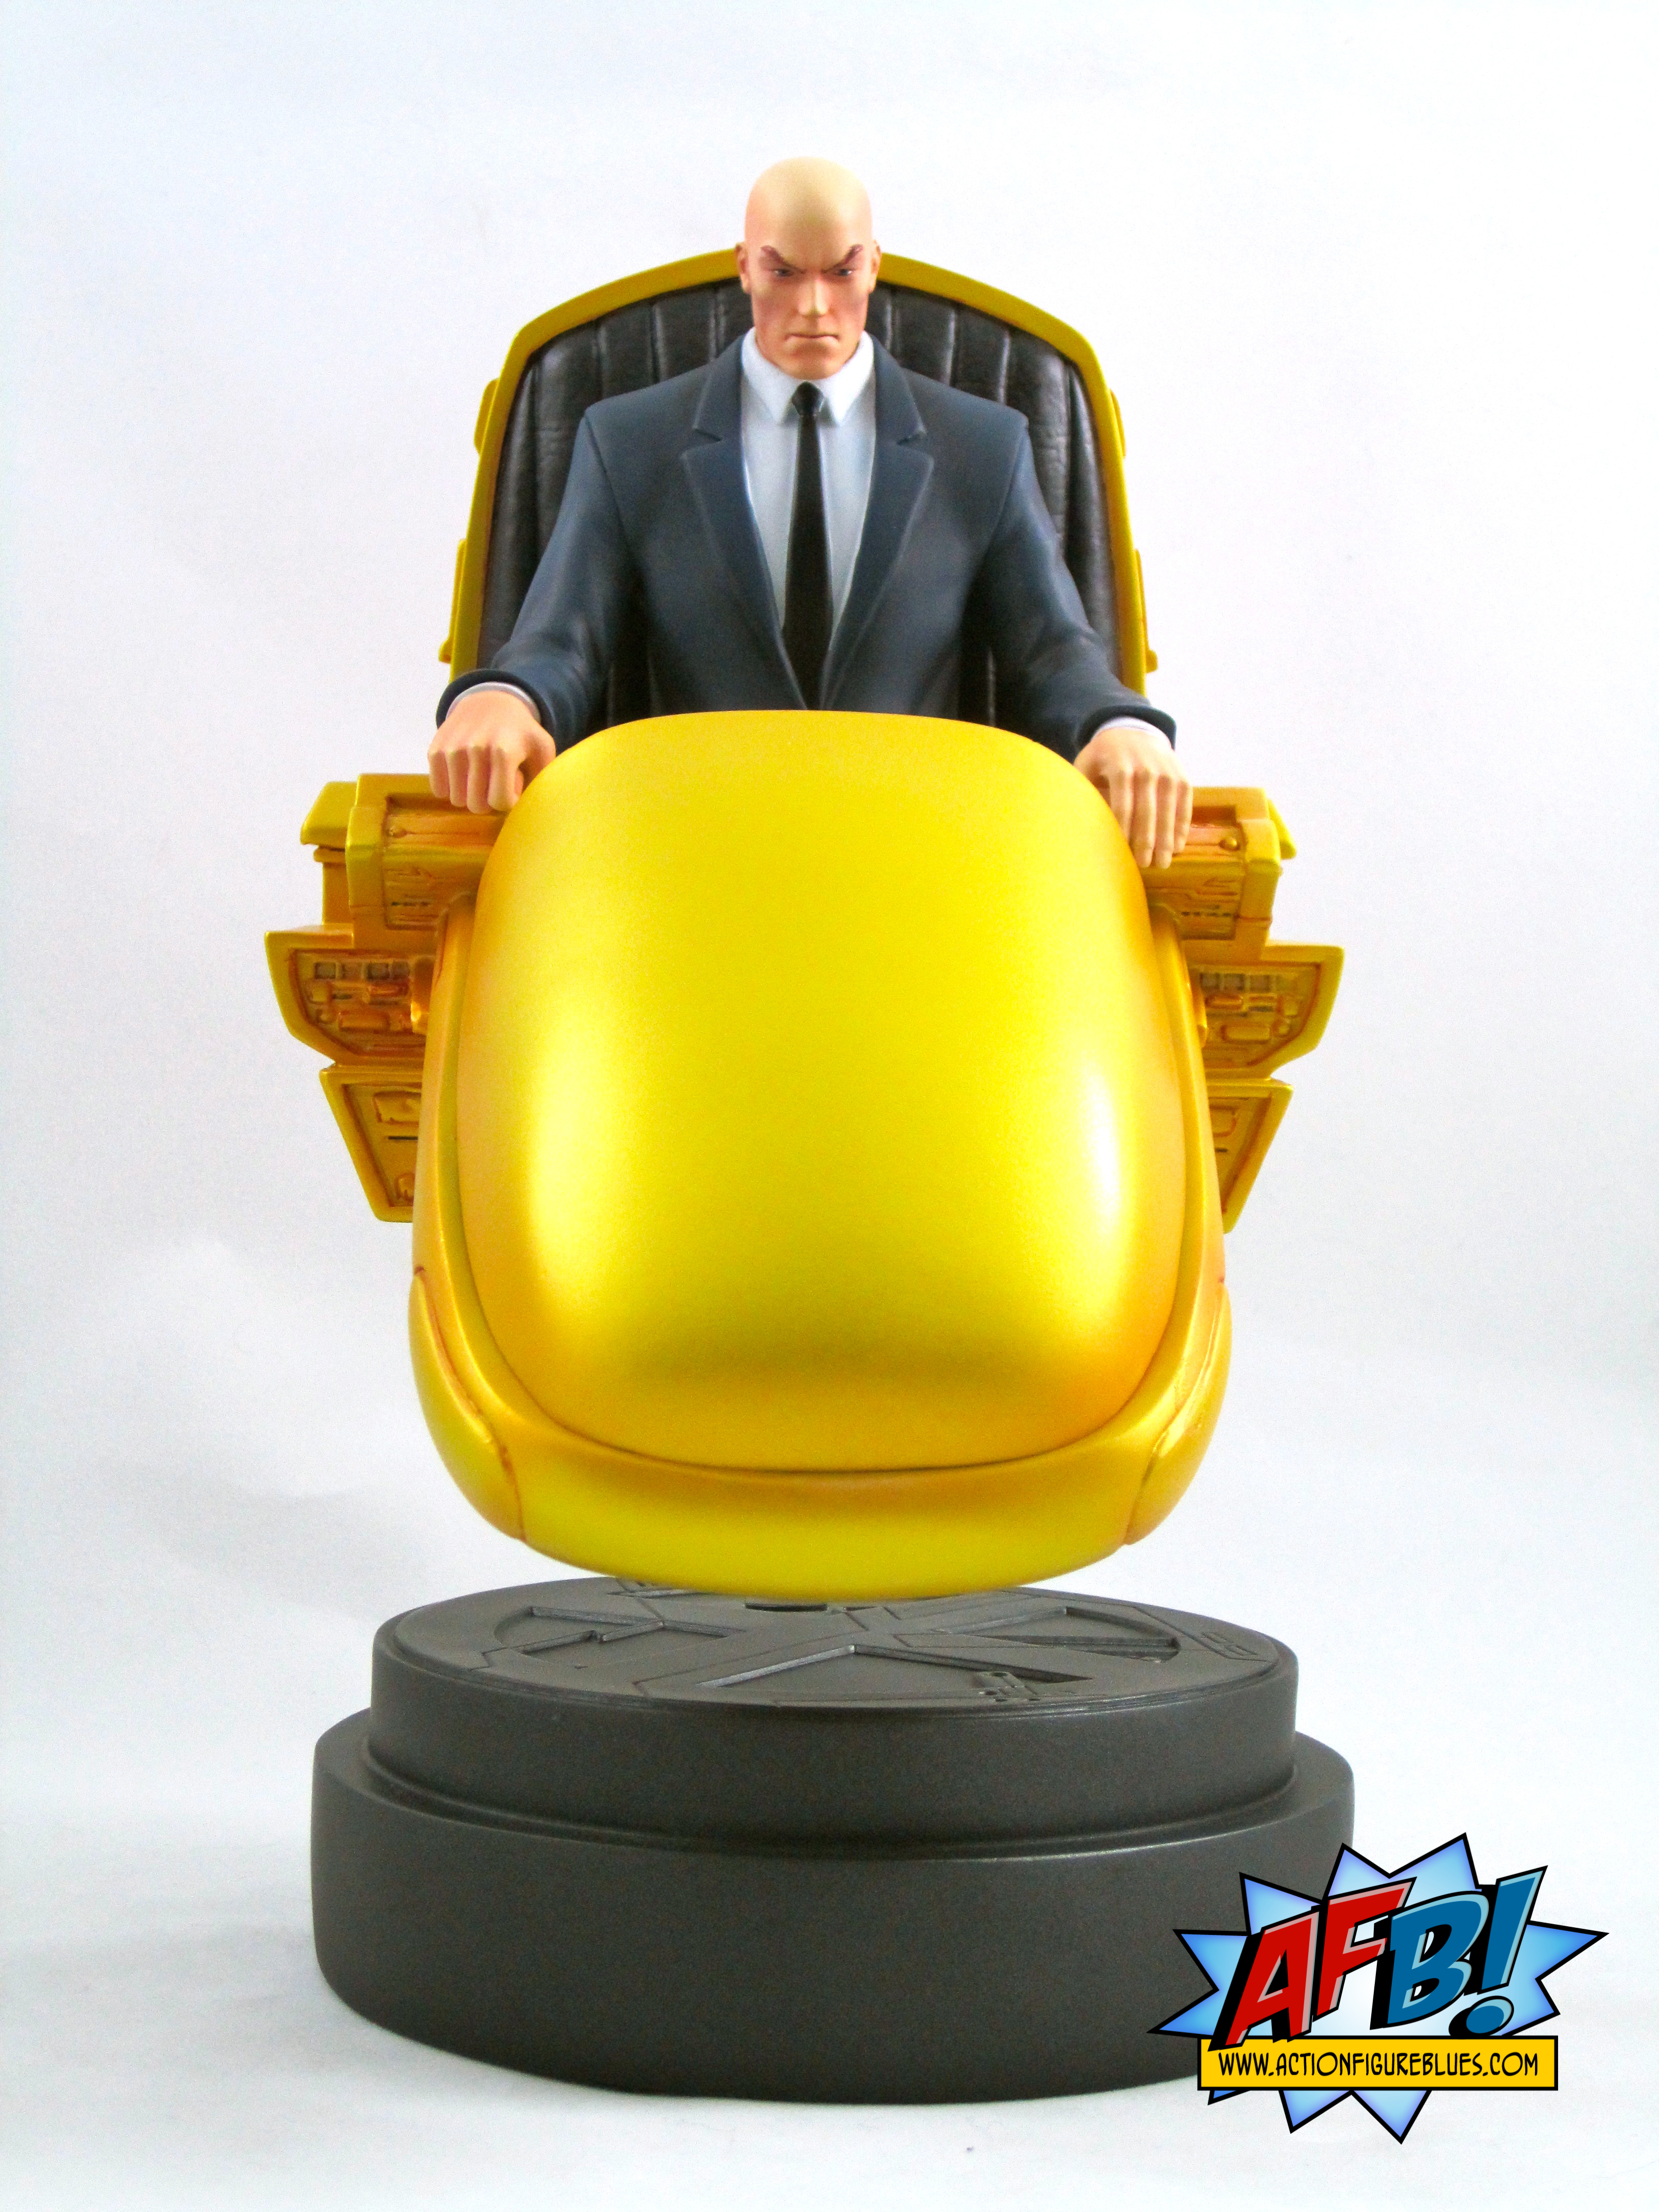 ... Helped Bowen Make Fans Of The Claremont / Lee Era X Men Happy By  Producing This Great Statue Of X Men Founder Professor Charles Xavier In  The Hoverchair ...